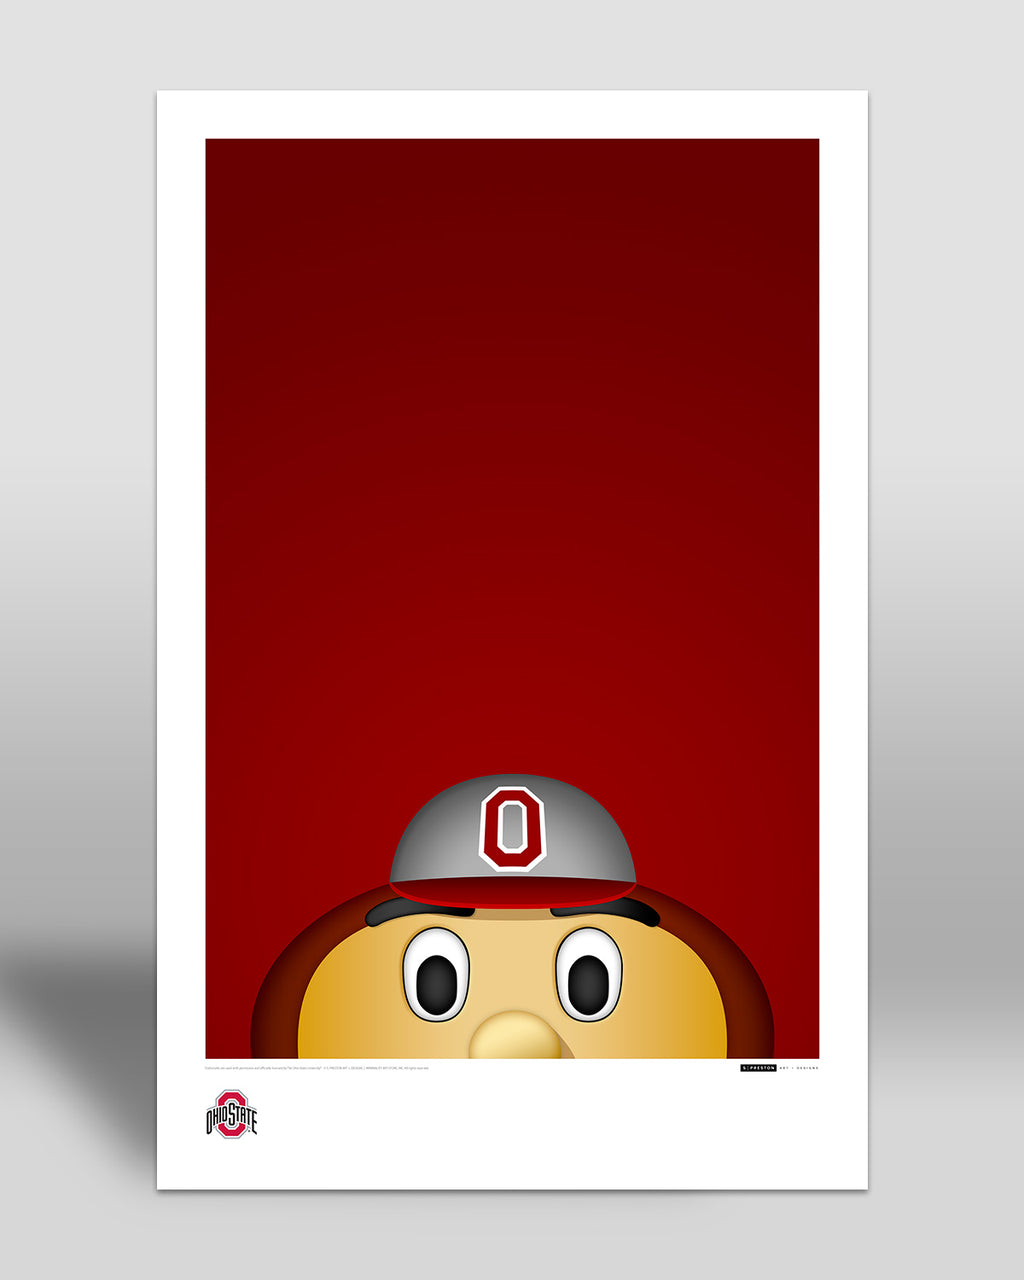 Minimalist Brutus Buckeye Art Poster Art Poster - Ohio State University - S. Preston Art + Designs